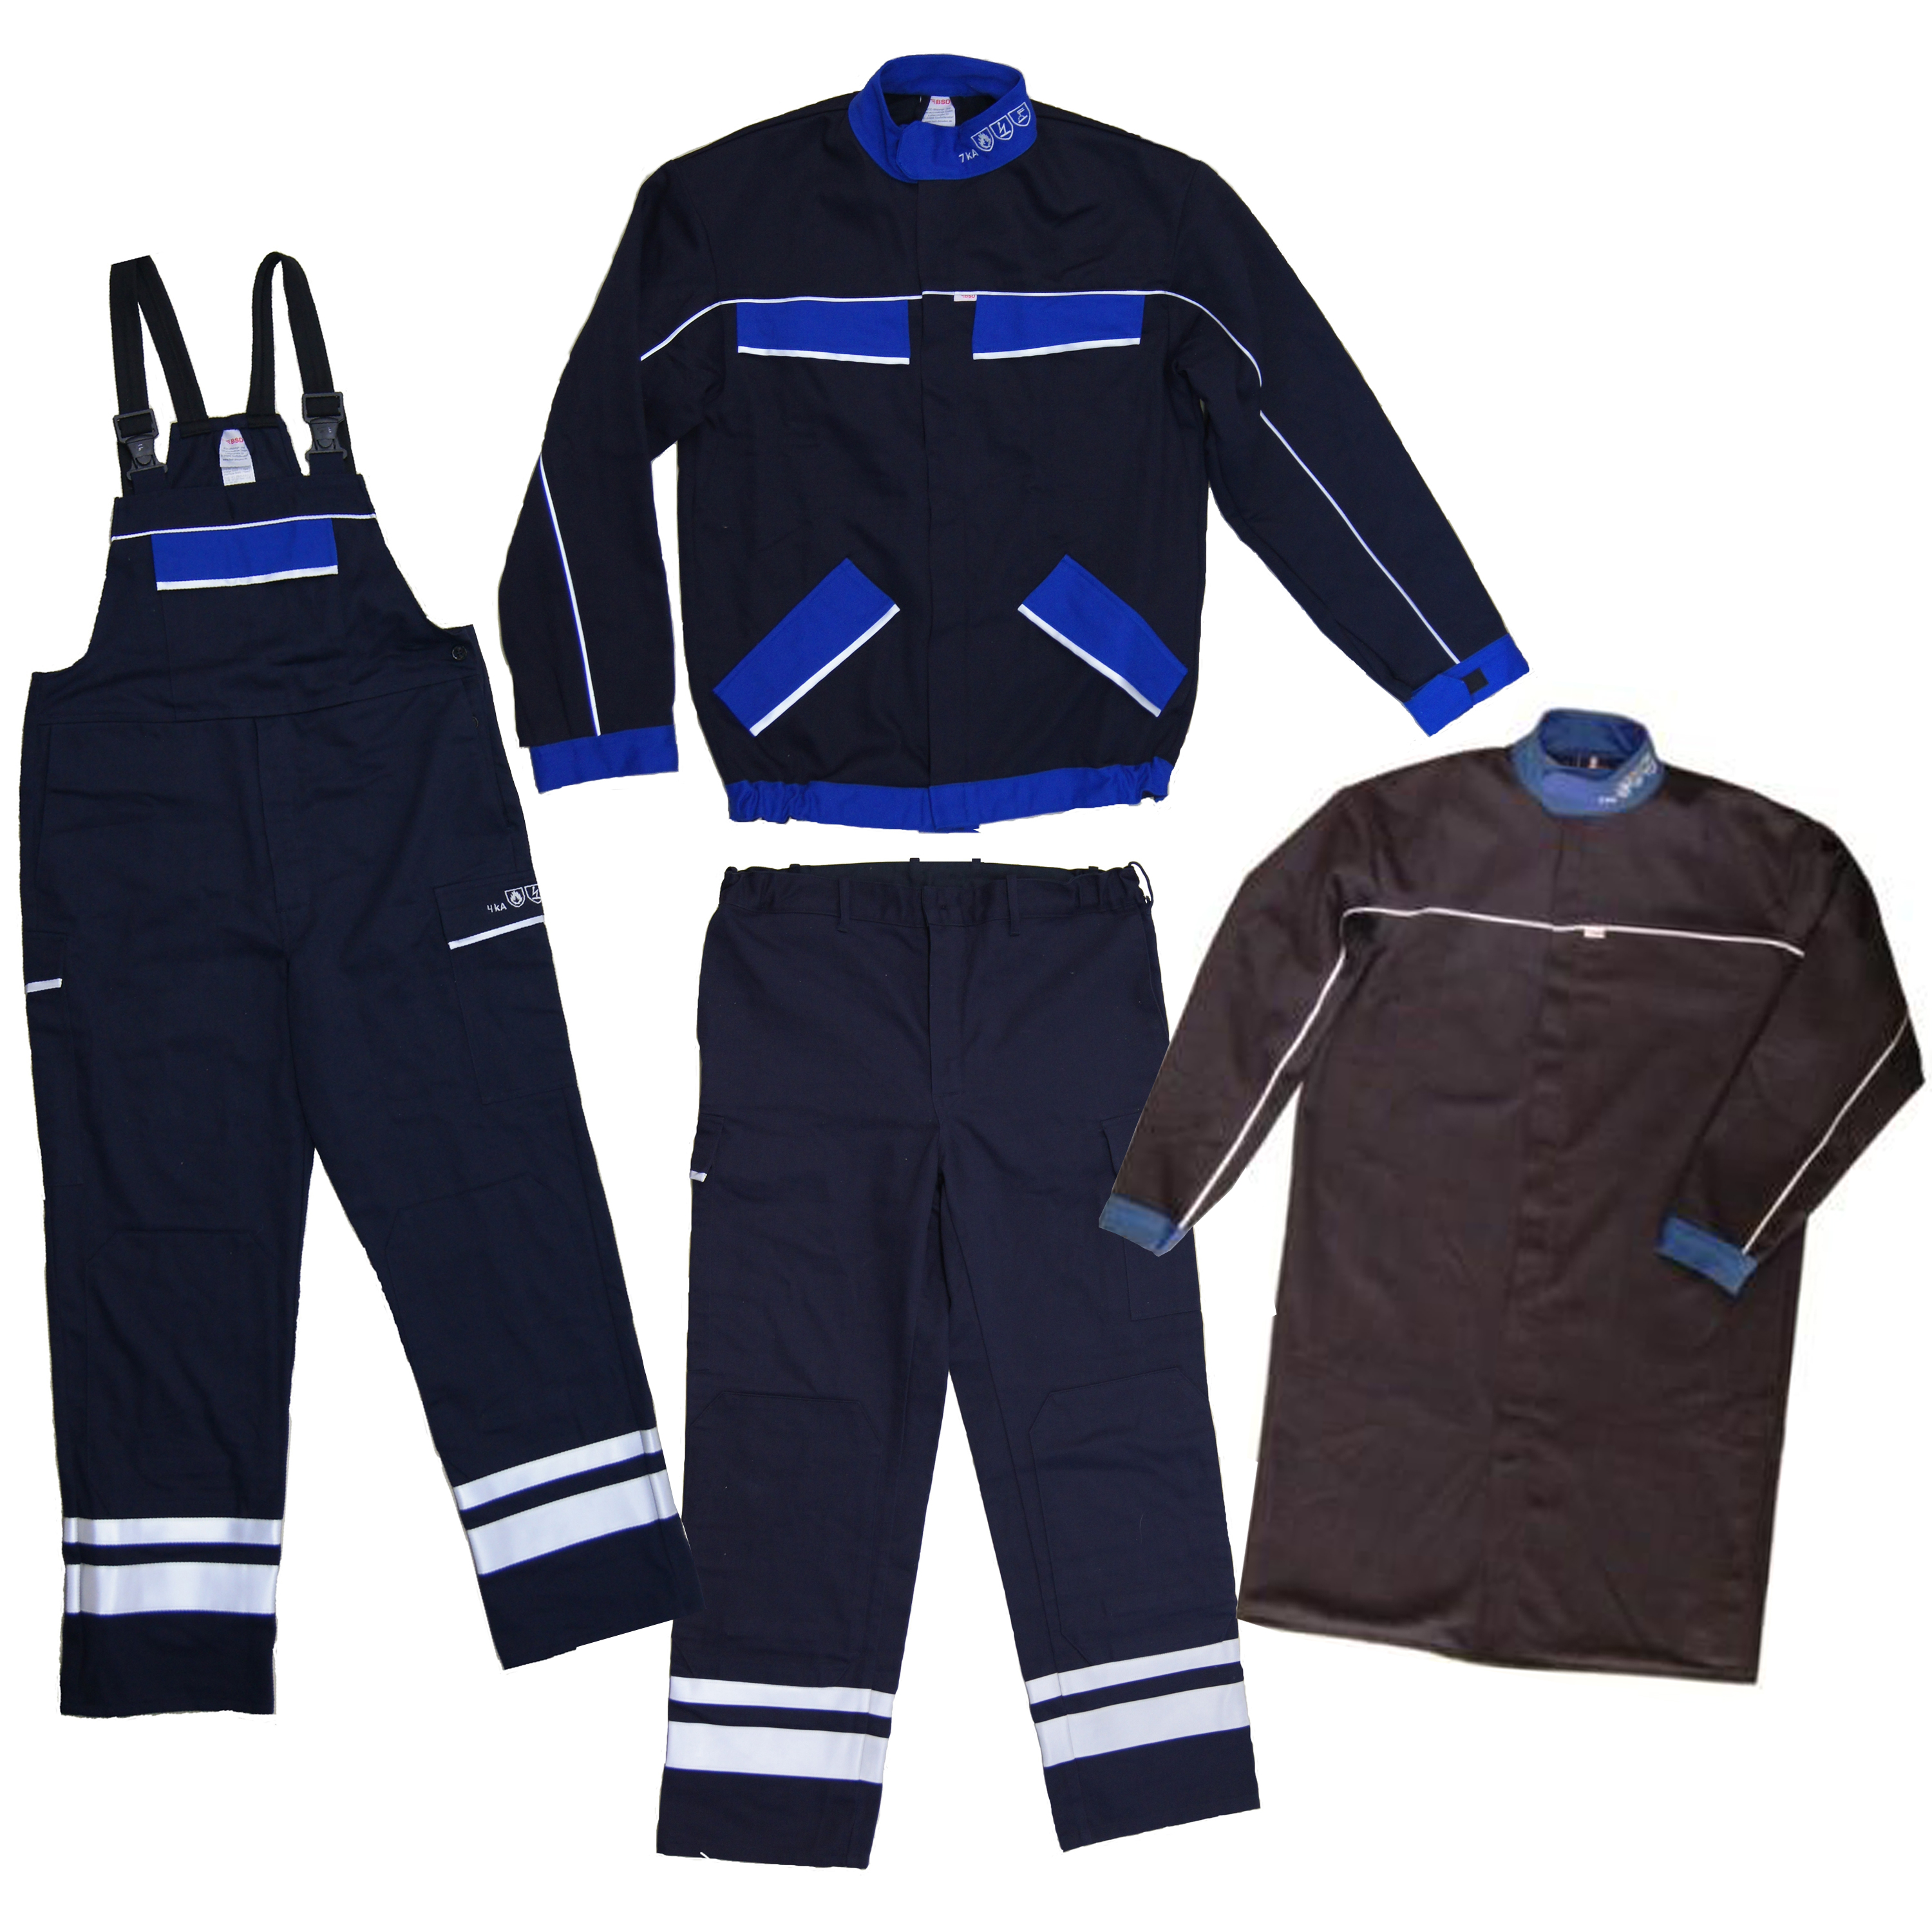 BSD CLASSIC ARC FLASH JACKET, TROUSERS, DUNGAREES AND SWITCHING COAT - 37.7 CAL/CM2